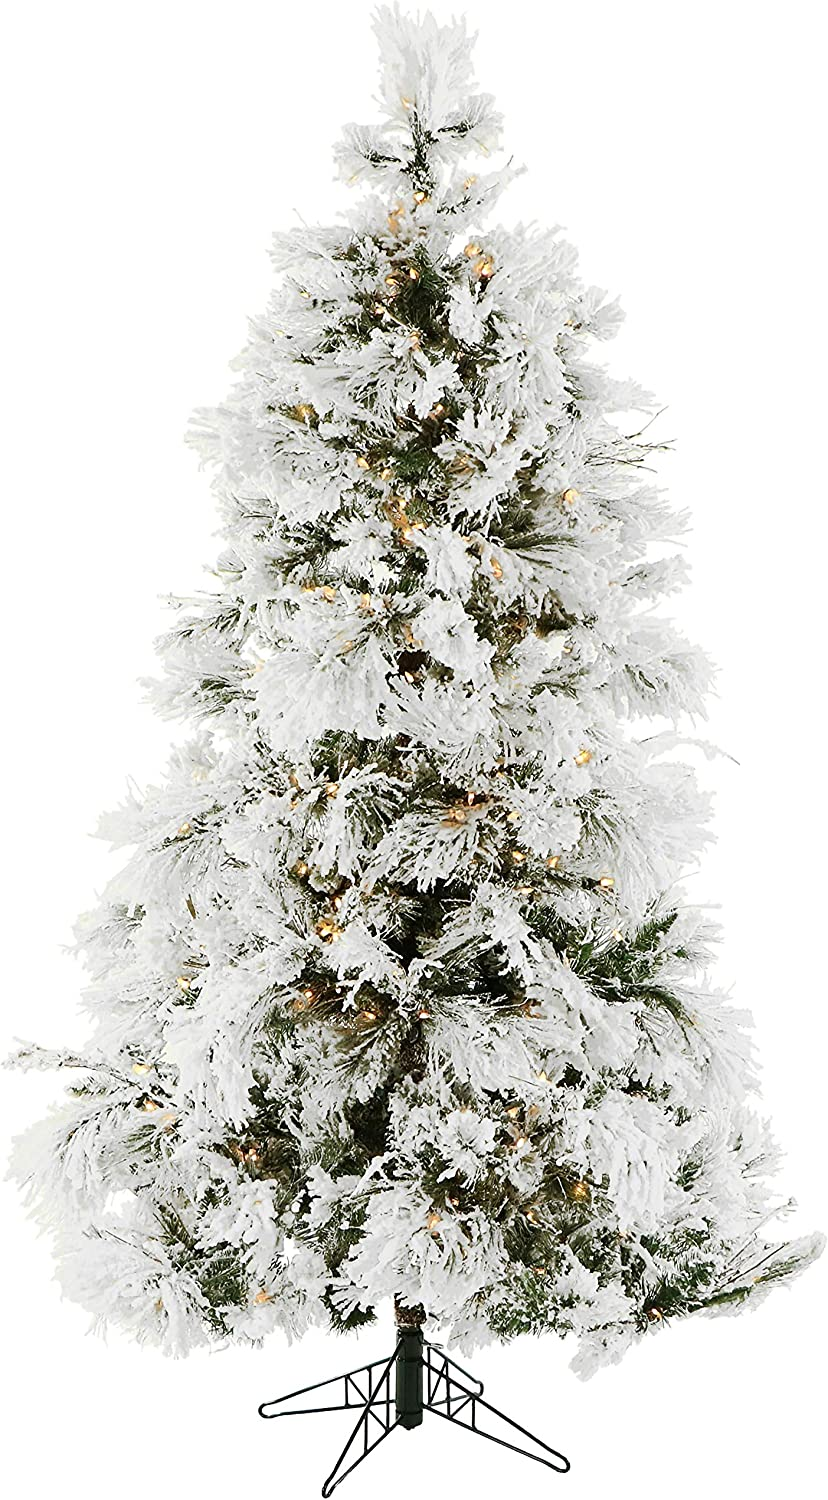 Fraser Hill Farm Ffsn075 5sn Flocked Snowy Pine Artificial Clear Led Lighting 7 5 Christmas Tree Ft Snow Home Kitchen Amazon Com